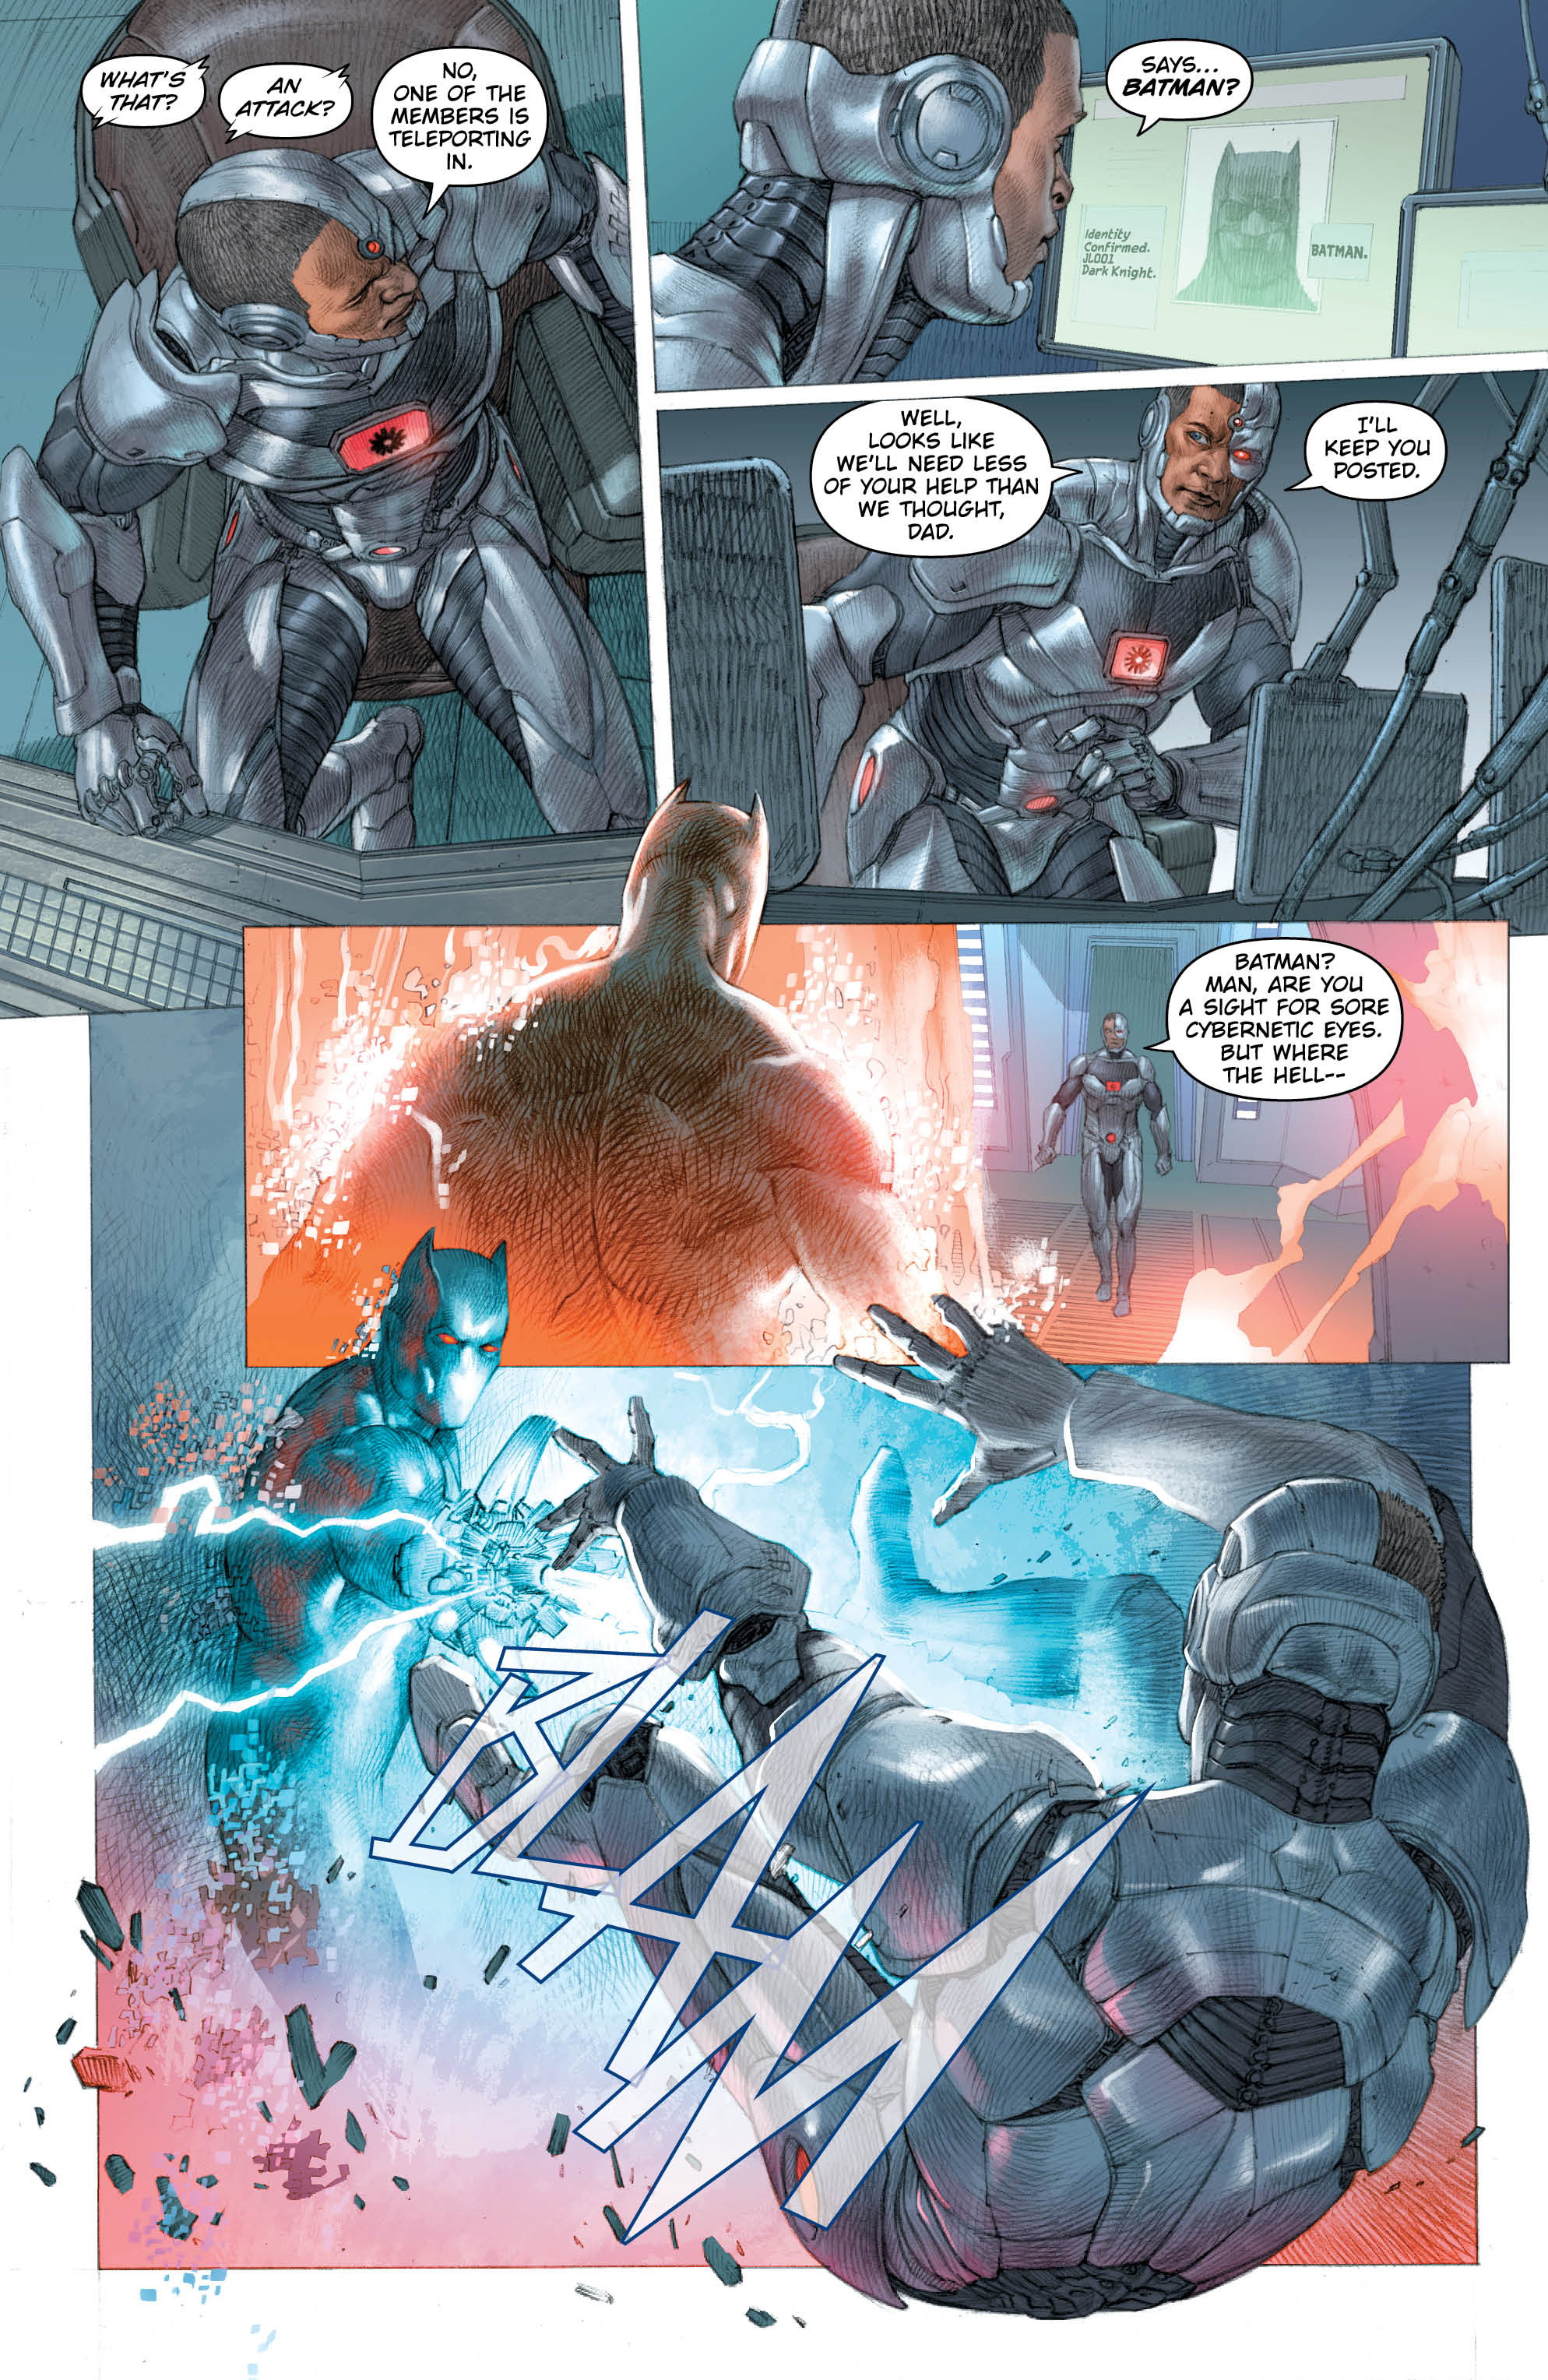 Batman Murder Machine 3 - DC Comics News